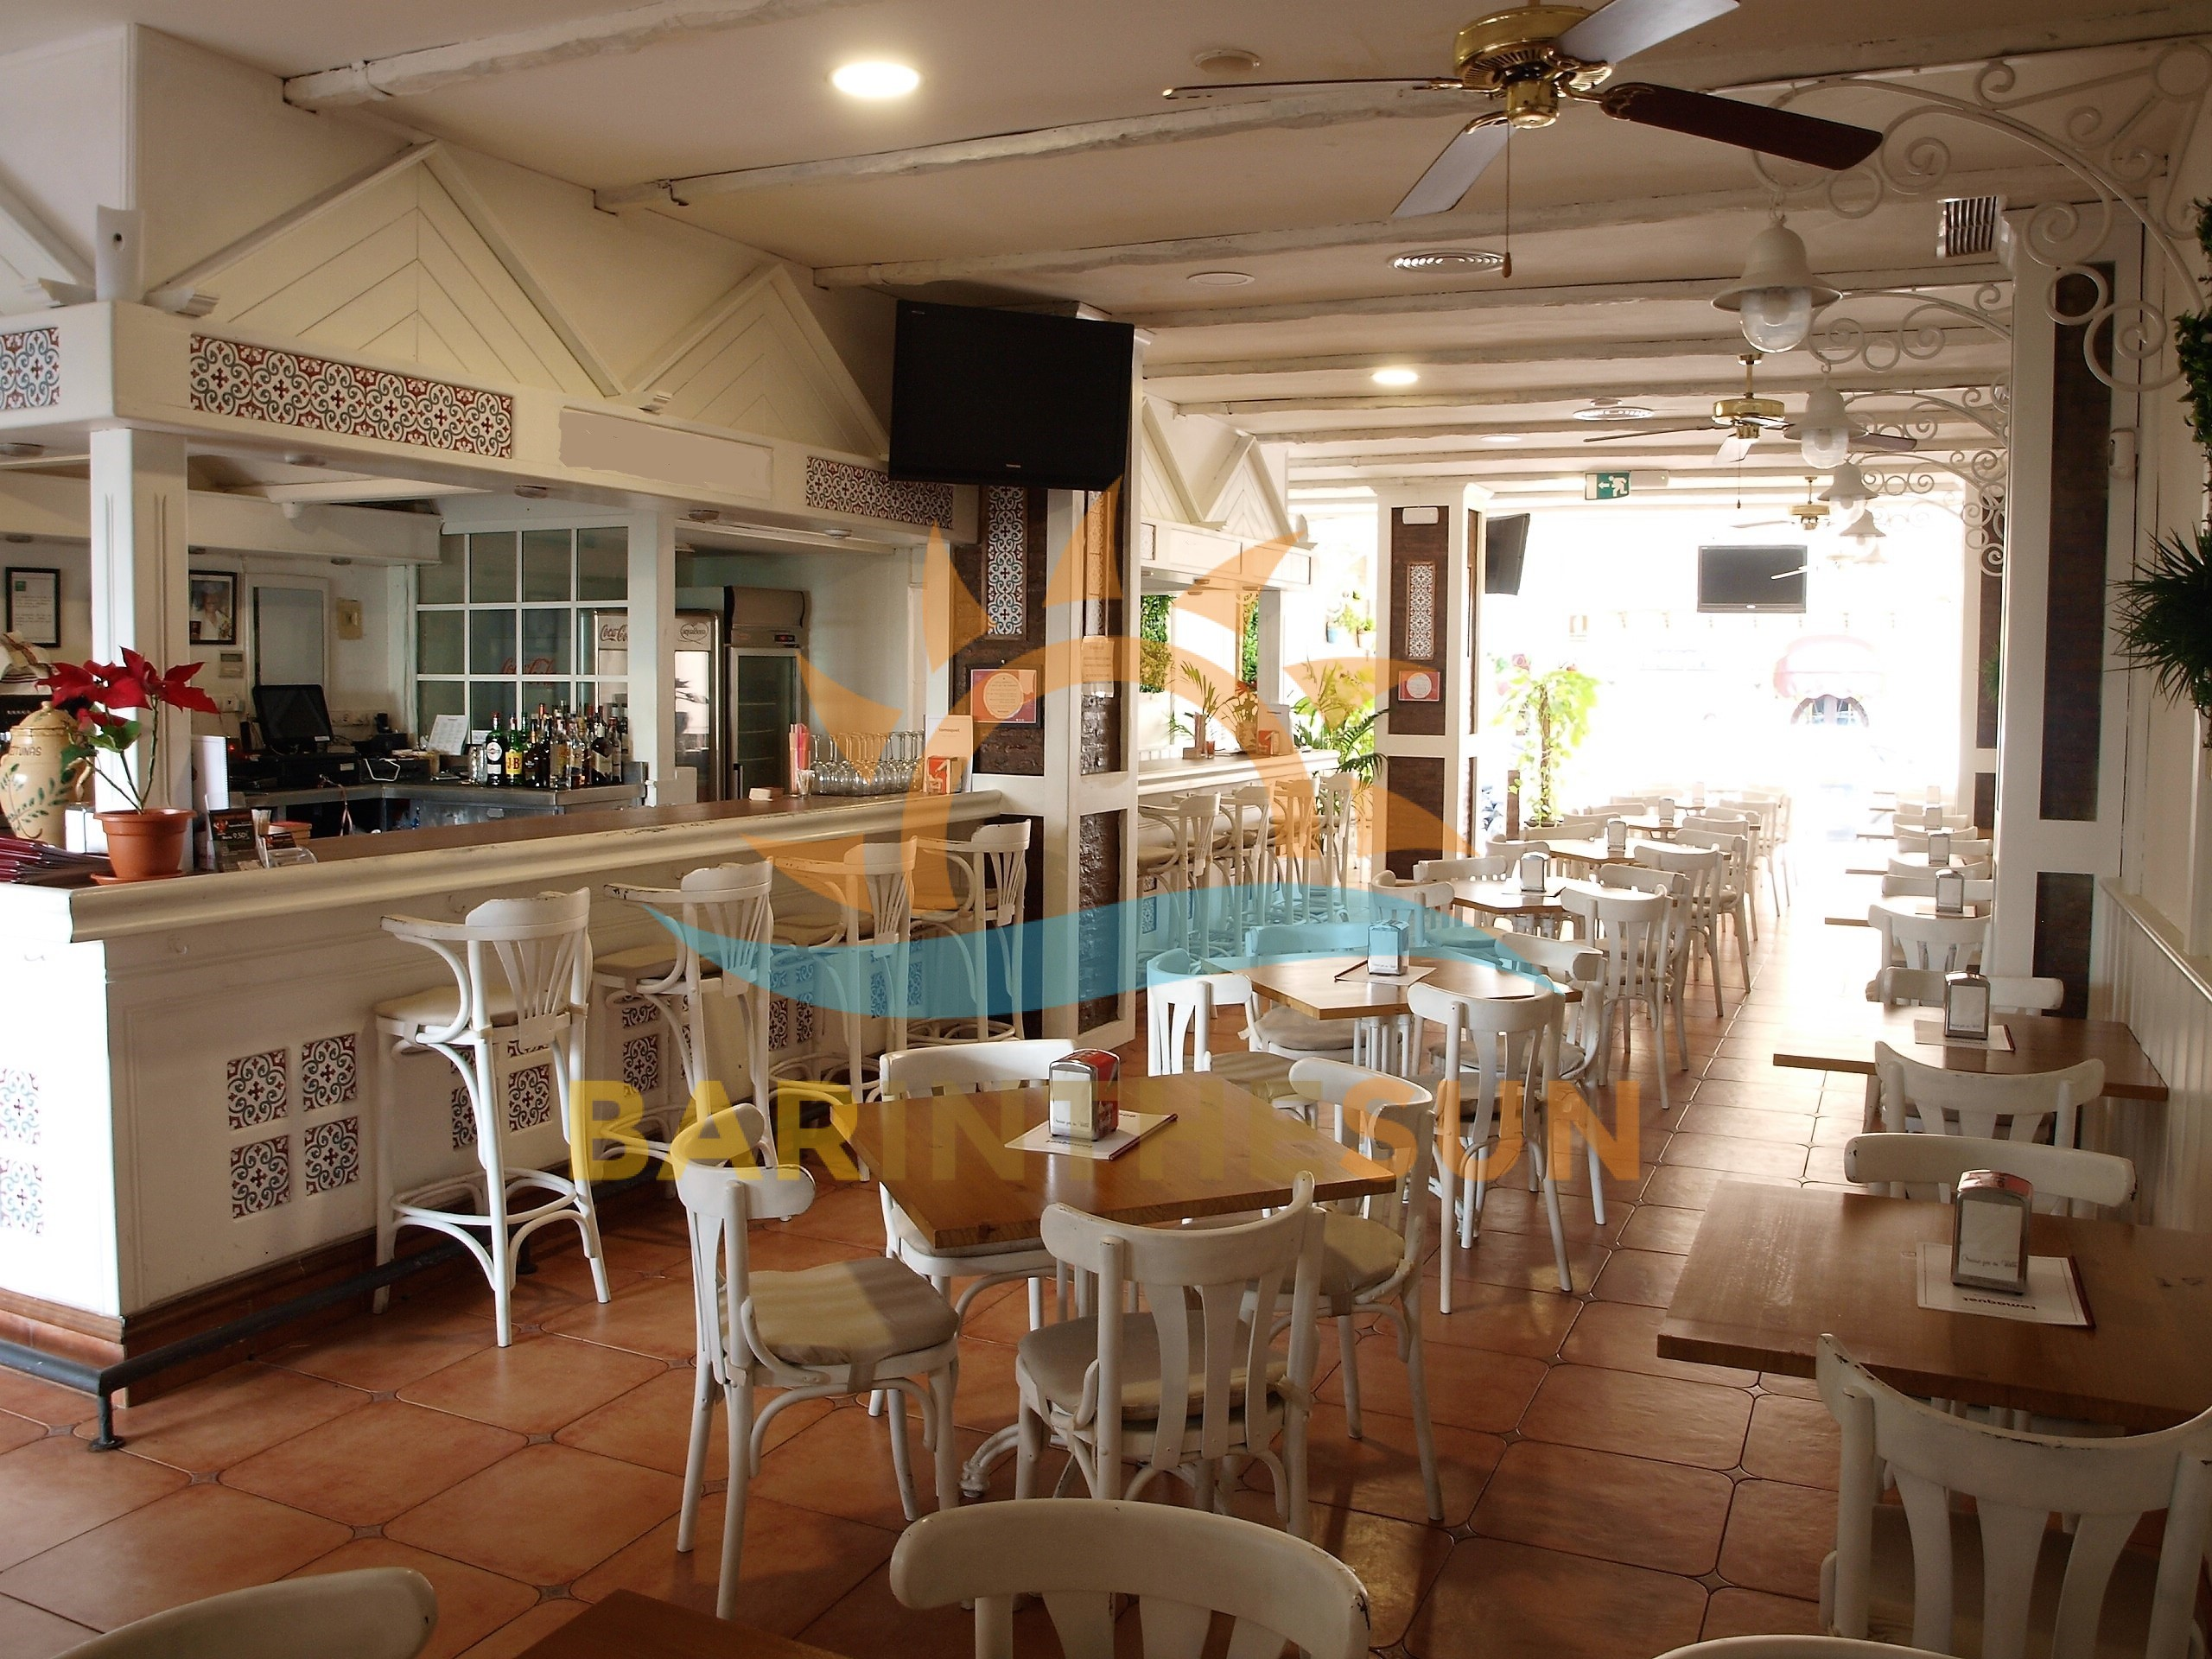 Bar Restaurant For Lease in Fuengirola, Costa del Sol Businesses For Sale